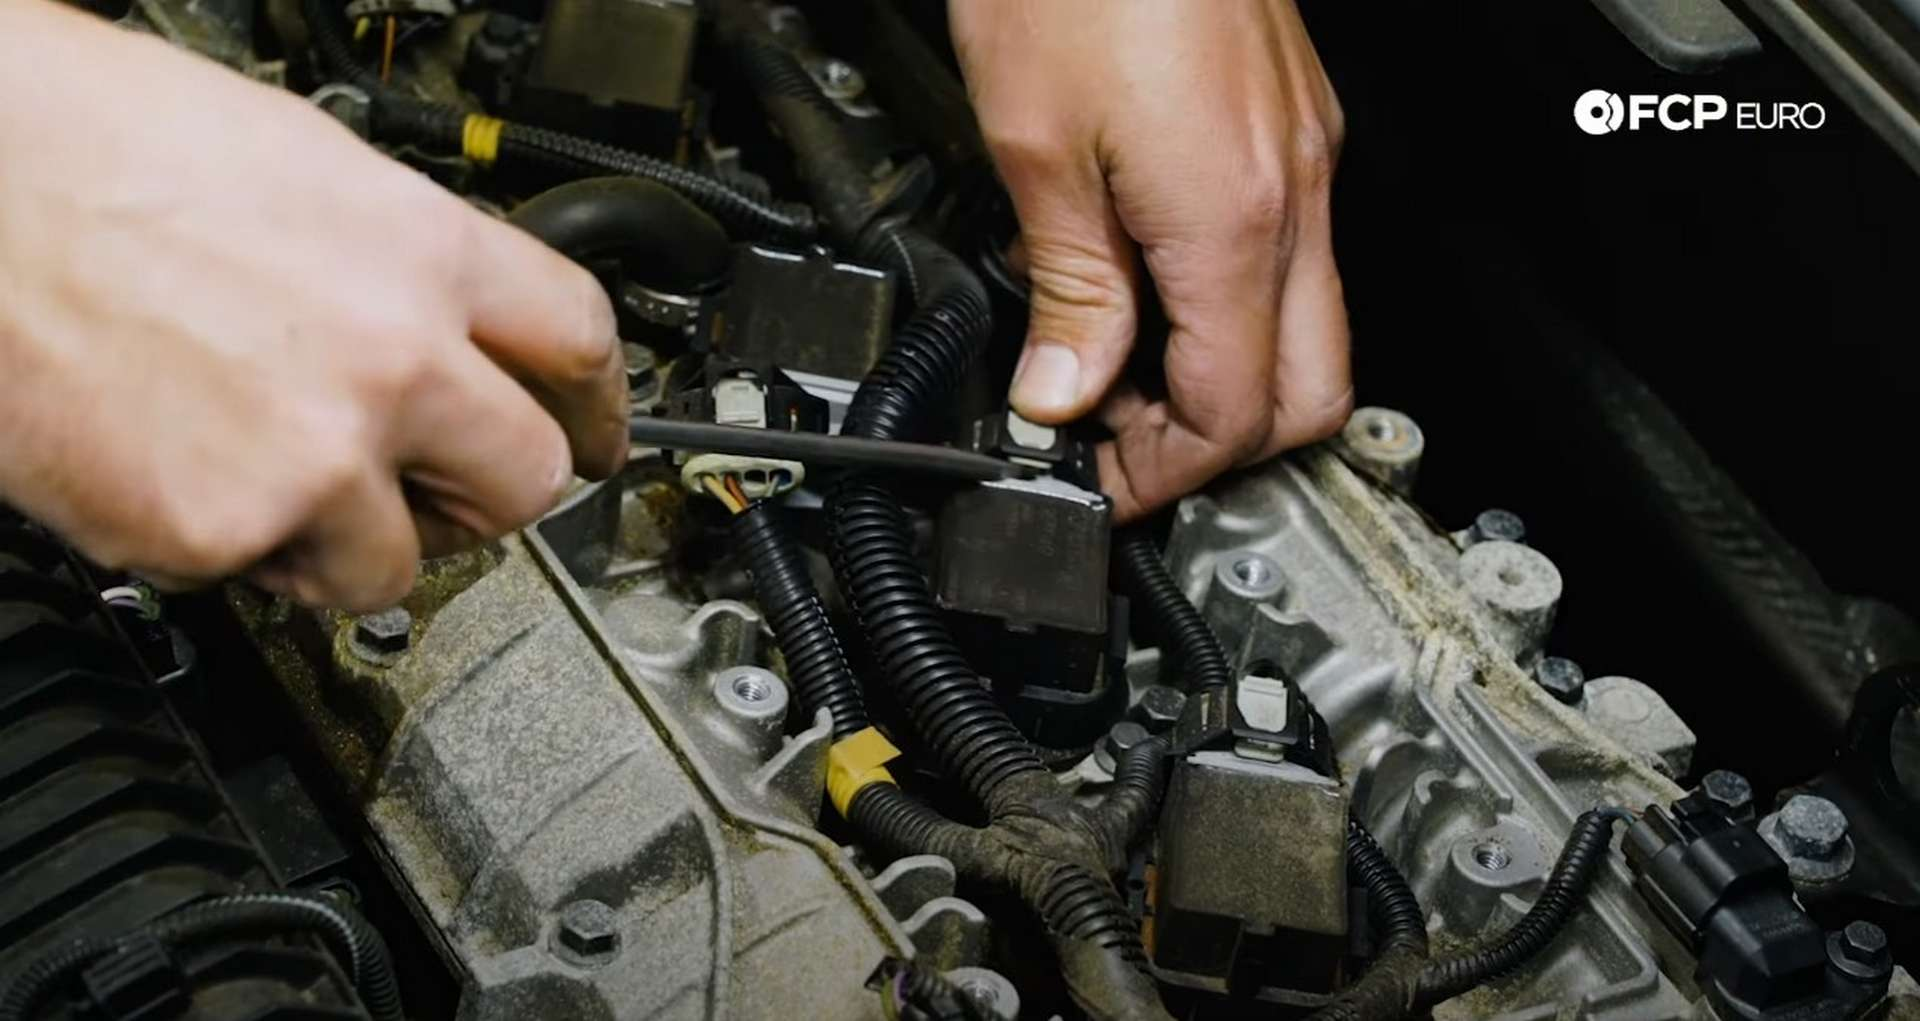 DIY Volvo Spark Plug and Ignition Coil Replacement unplugging the ignition harness